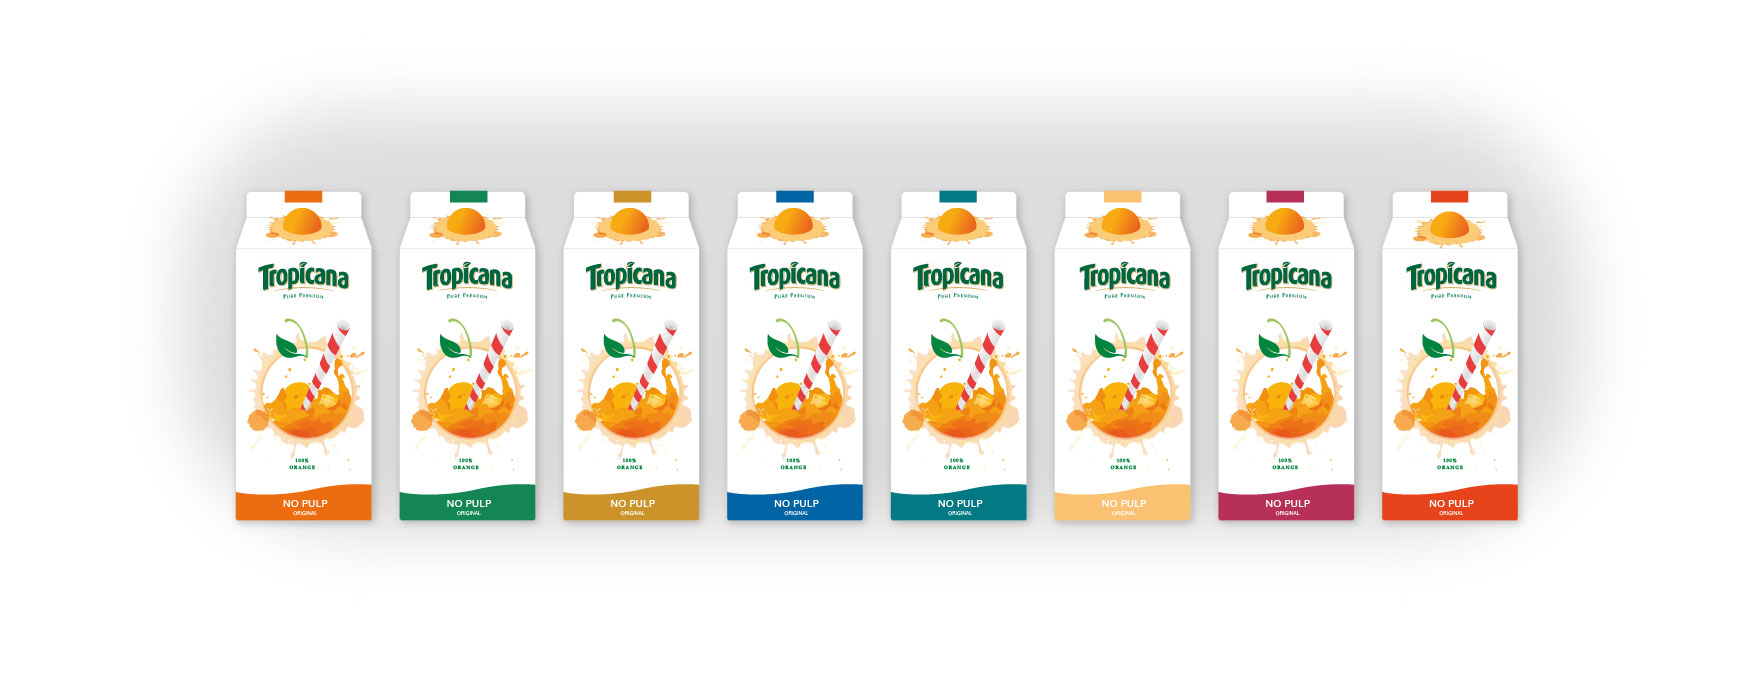 Tropicana Propositions pack-02